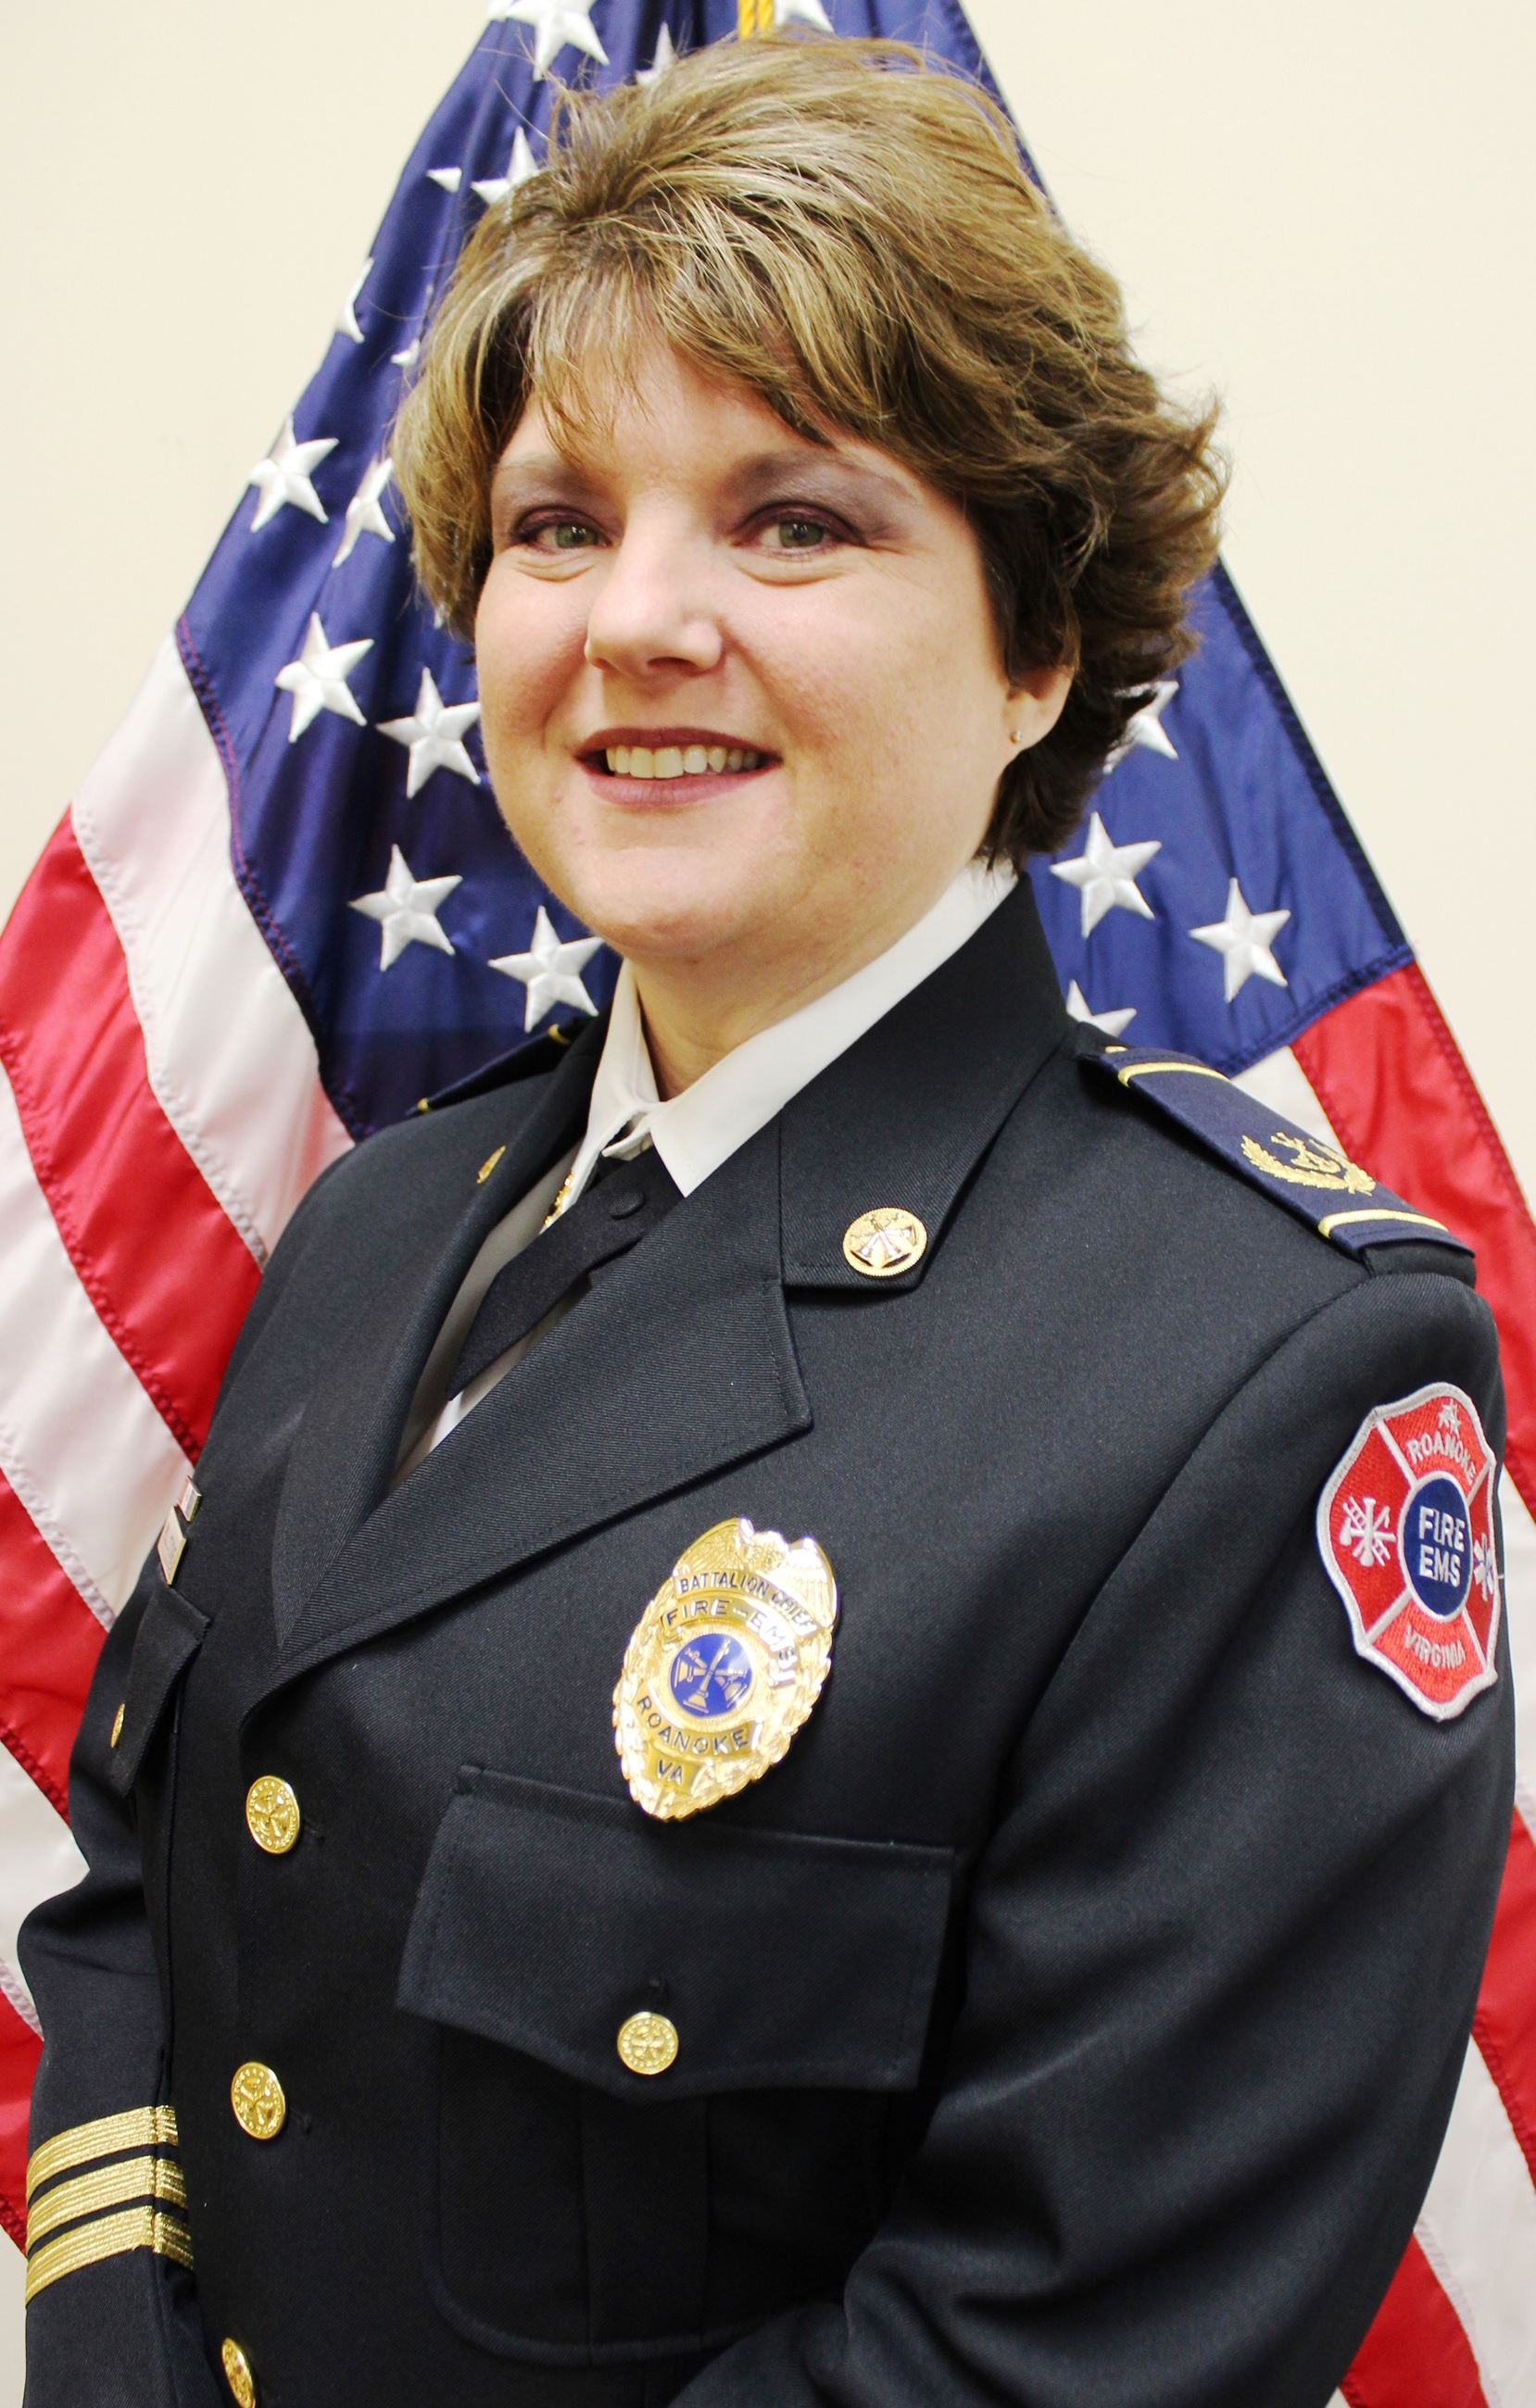 Battalion Chief Marci Stone